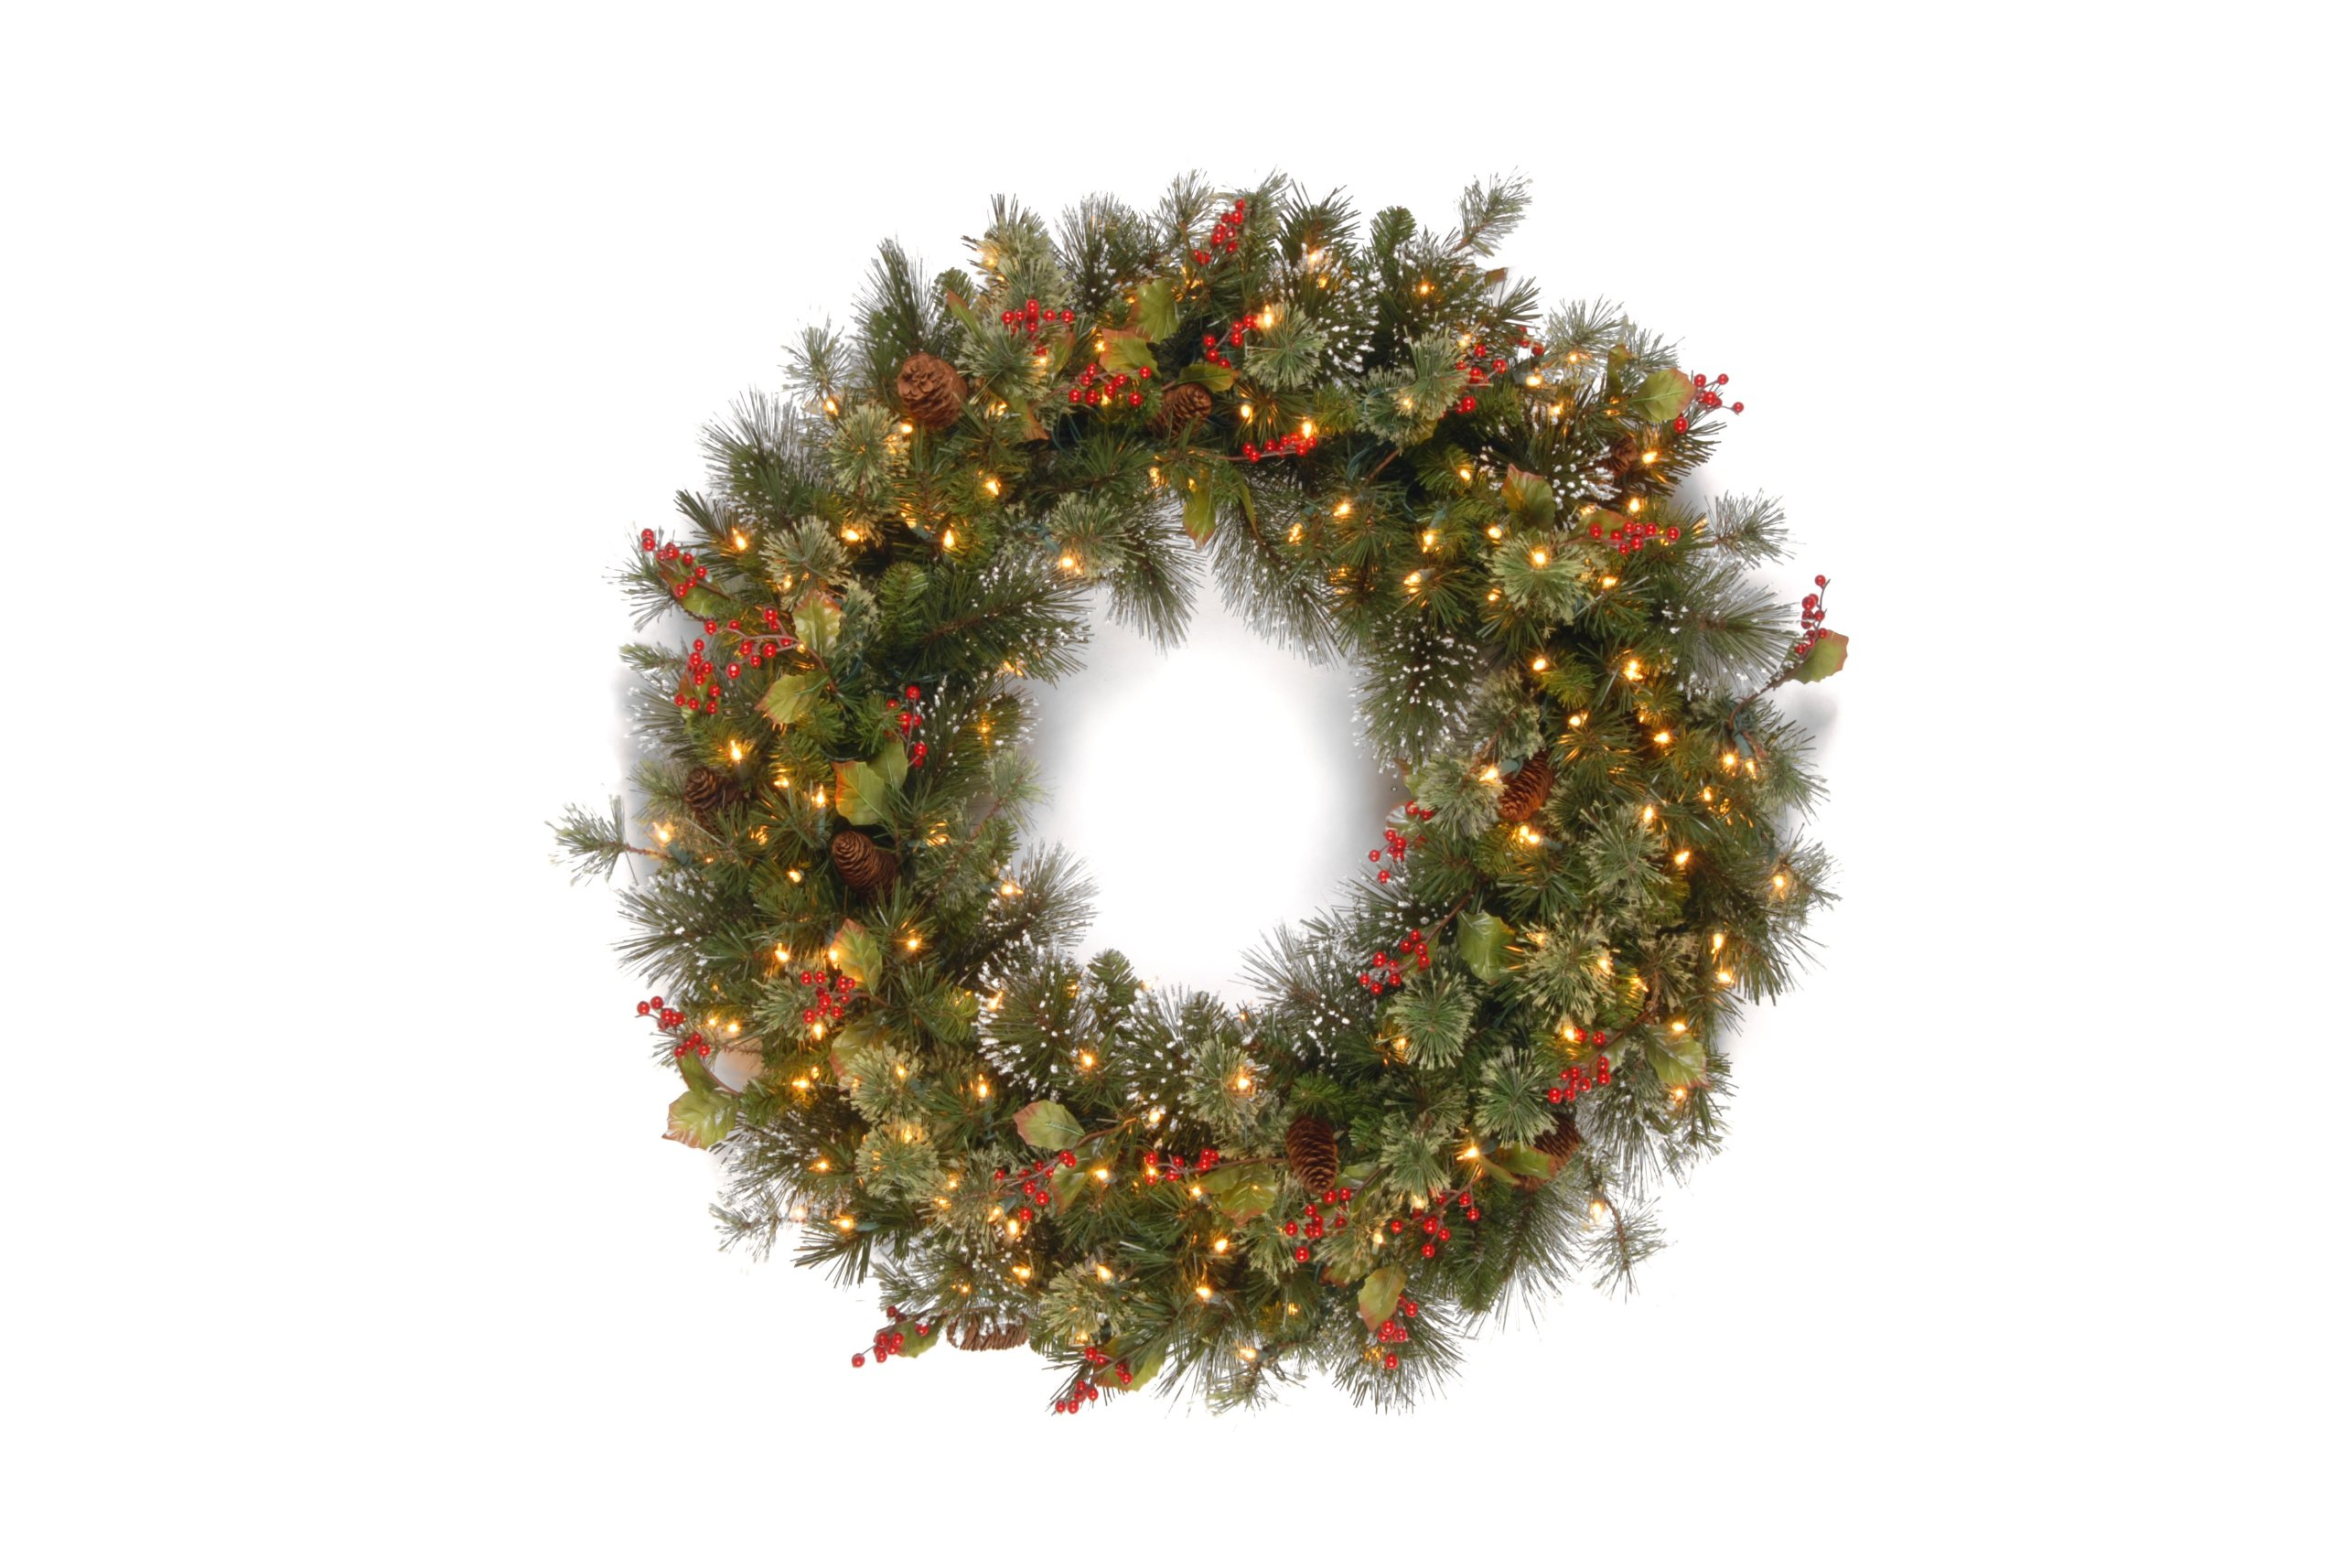 National-Tree-36-Inch-Wintry-Pine-Wreath-with-150-Clear-Lights-WP3-300-36W